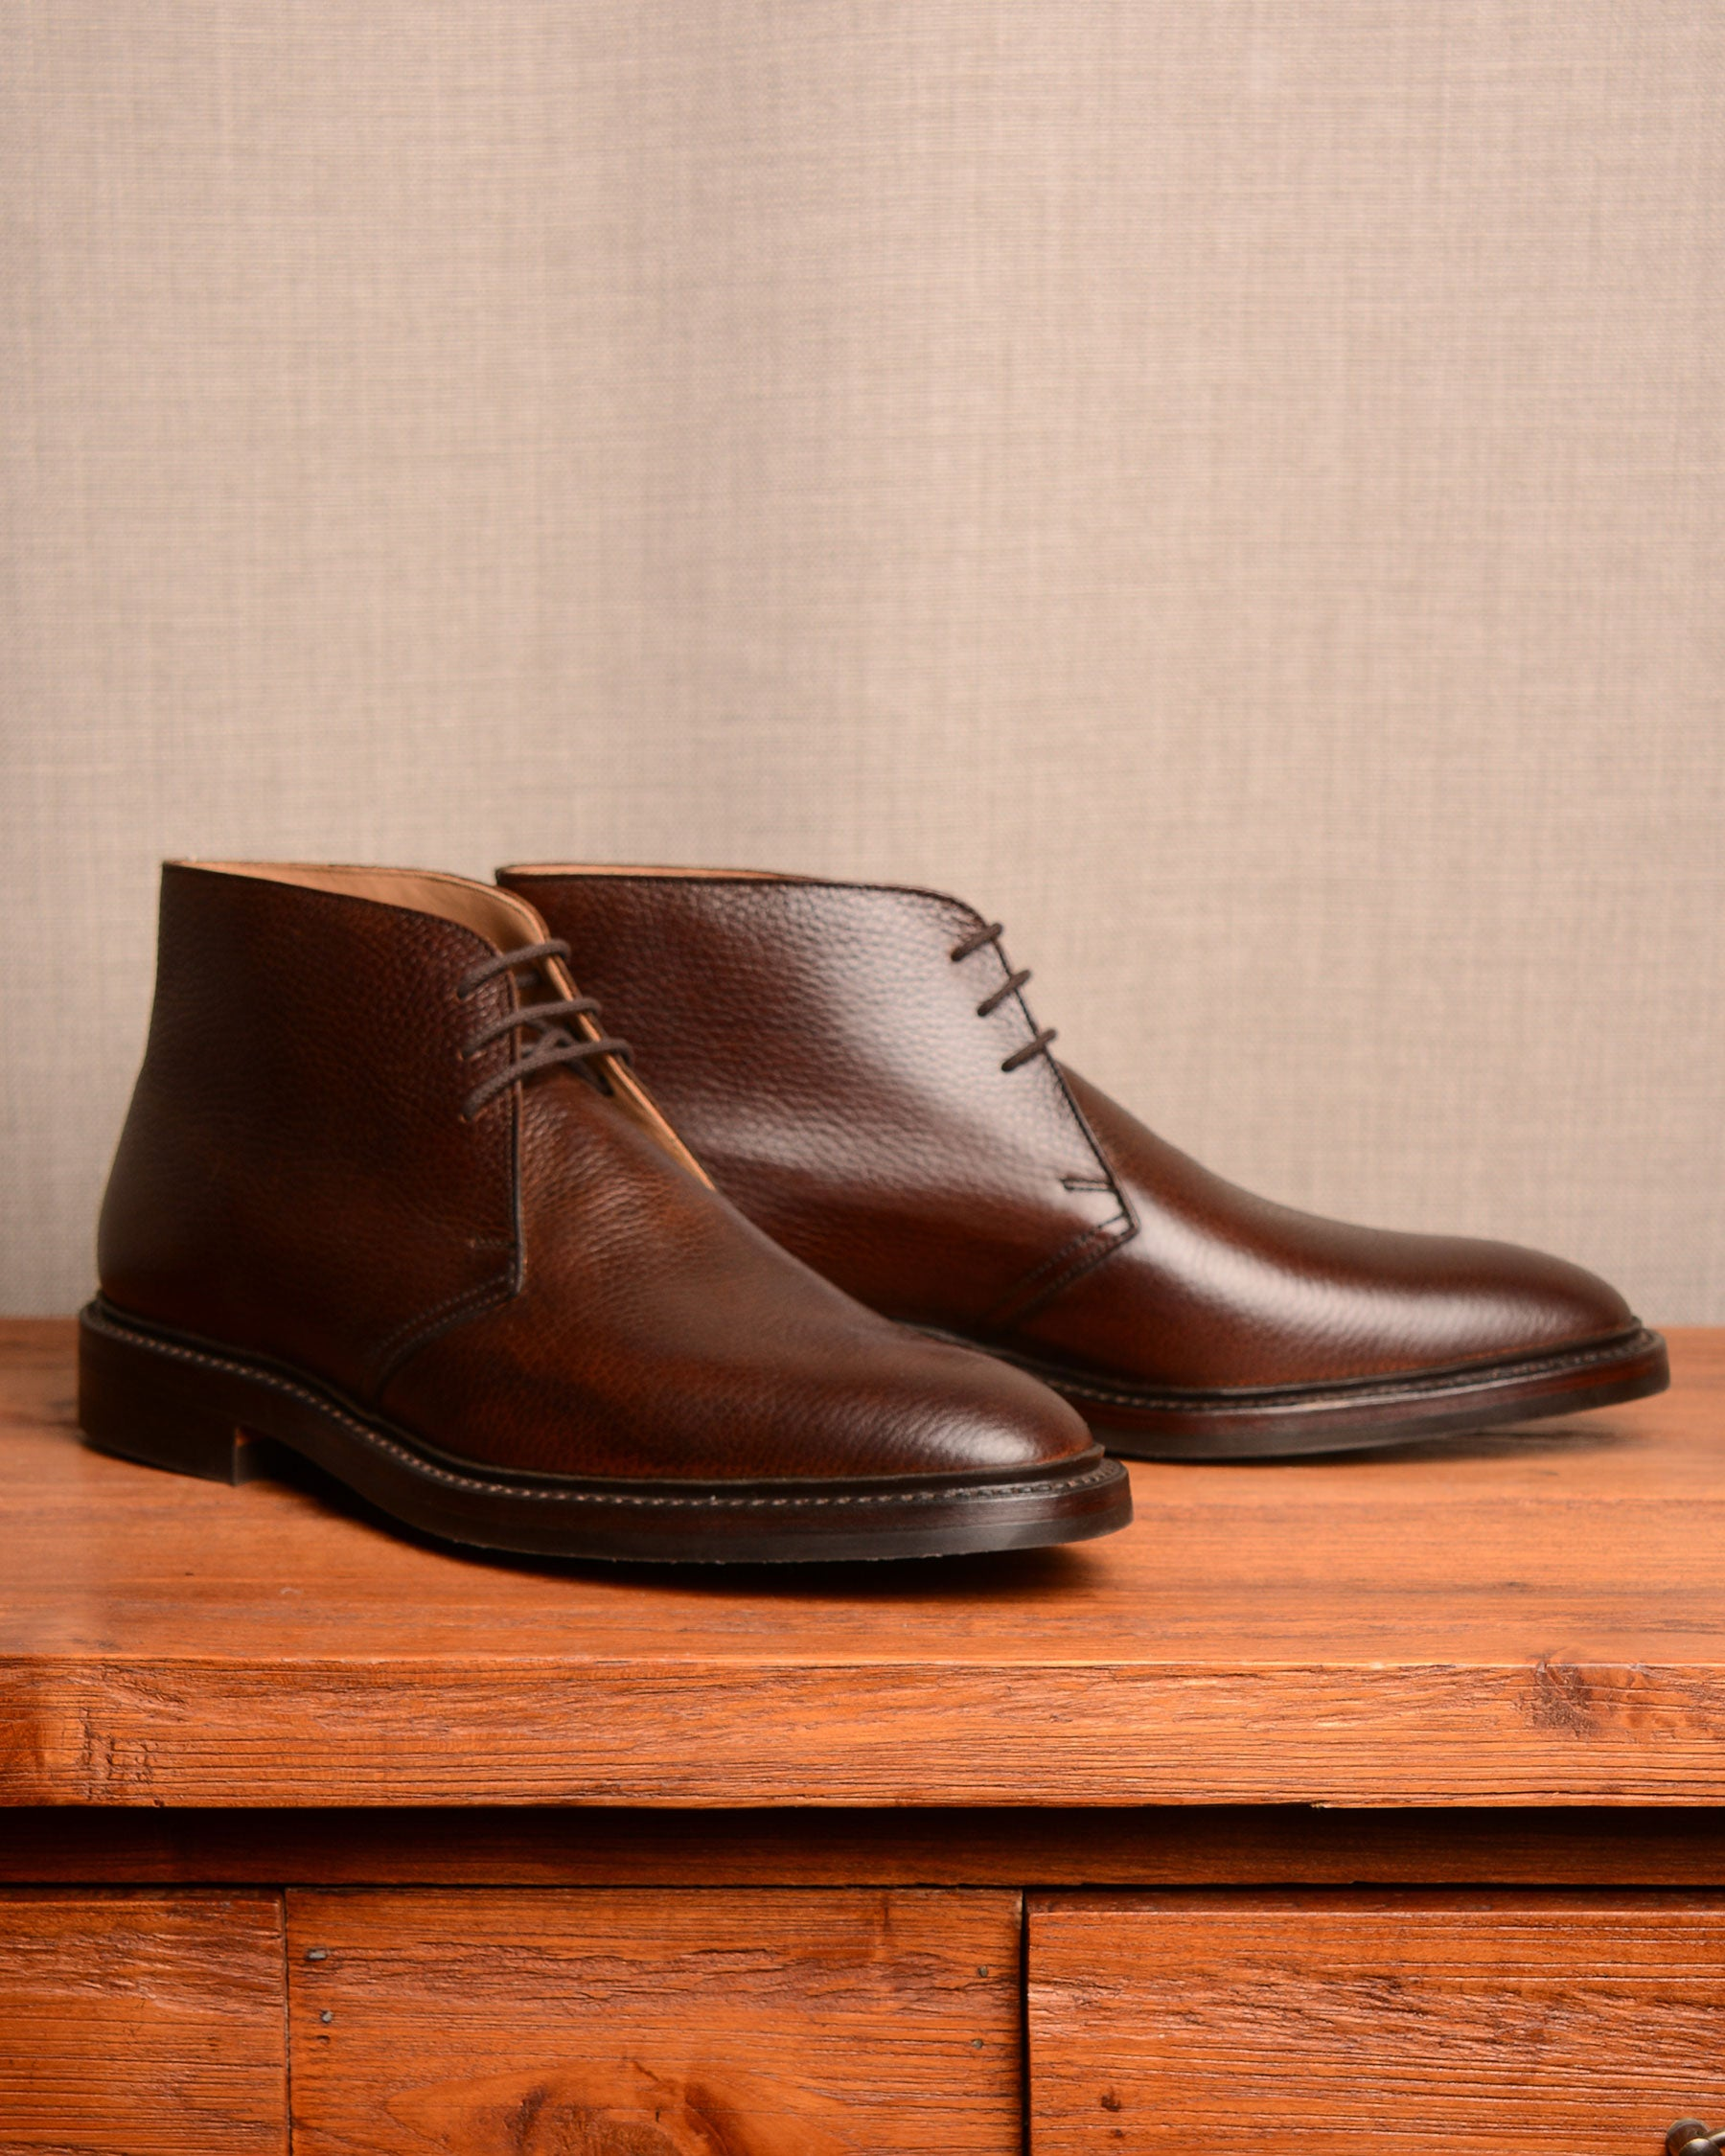 Crockett & Jones Brecon - Dark Brown Country Calf